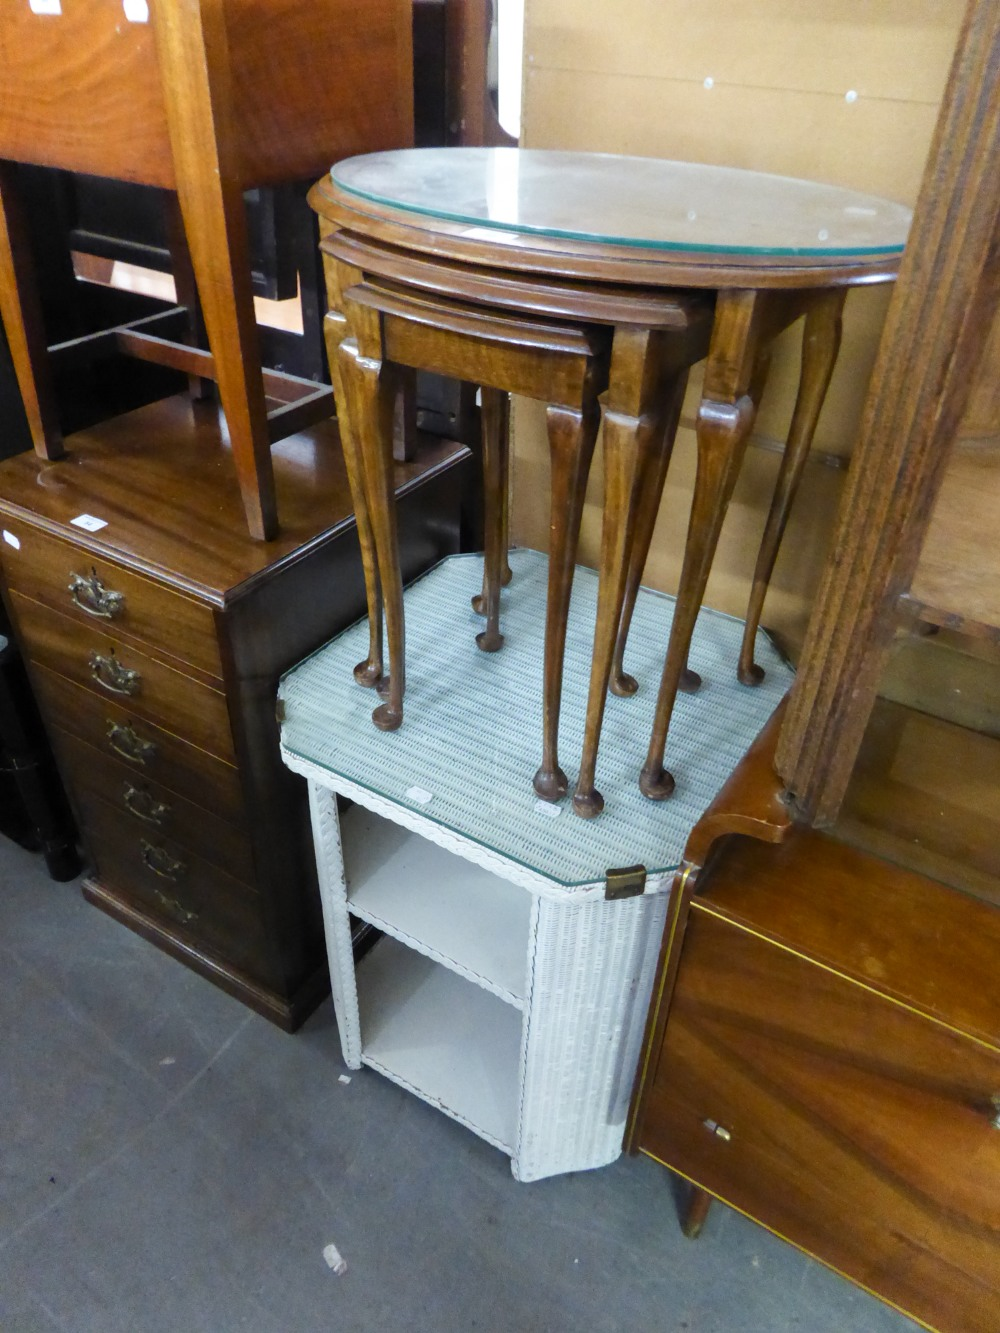 Lot 40 - A NEST OF MATCHING COFFEE TABLES, ON SLENDER CABRIOLE LEGS AND A WHITE LOOM SQUARE THREE TIER